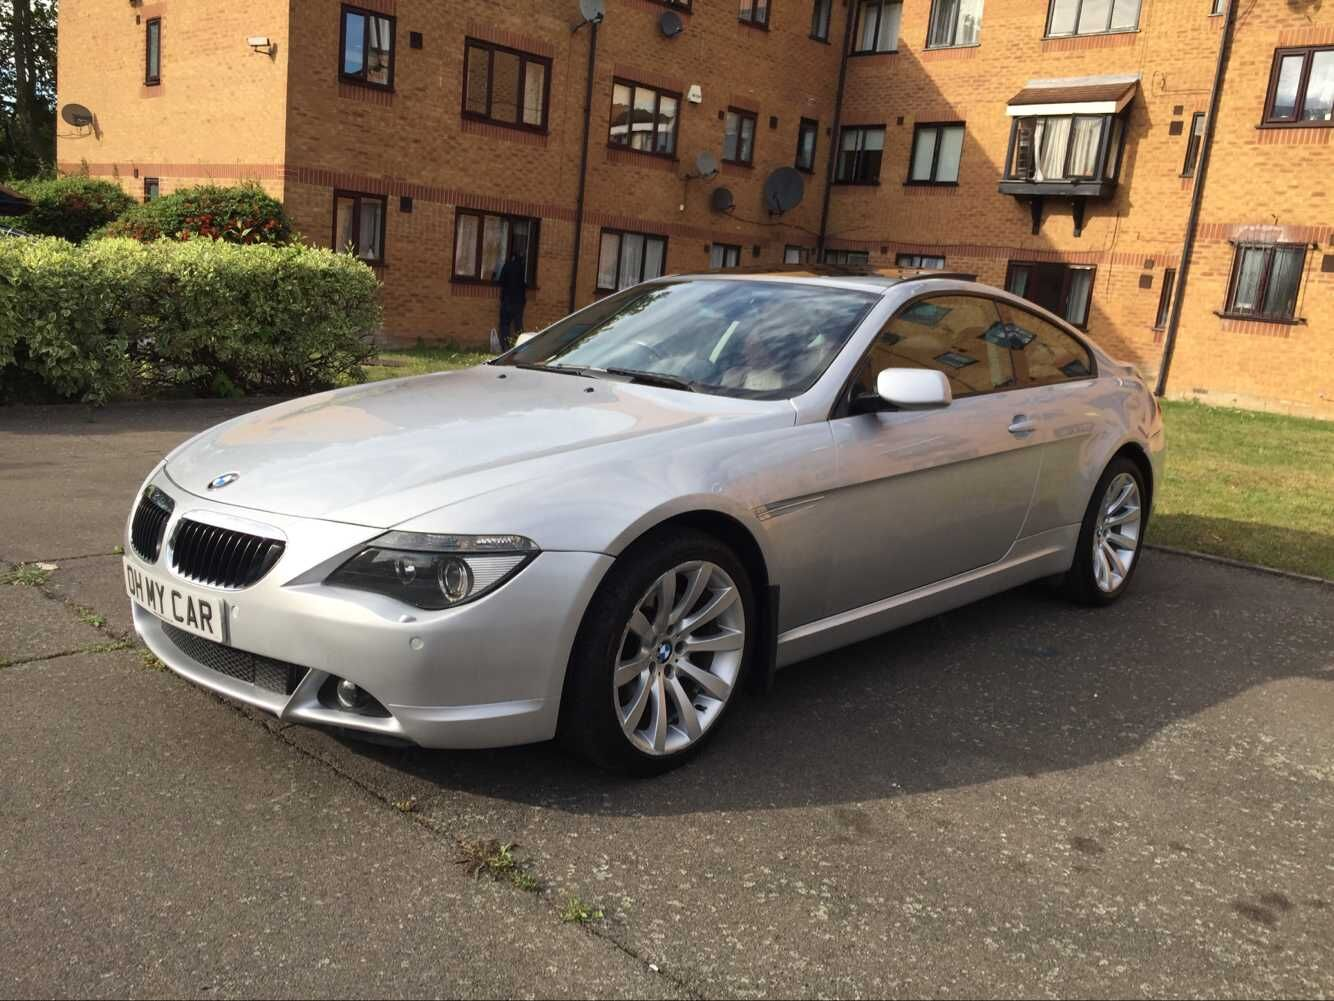 BMW 6 series 630i 2009 photo - 12